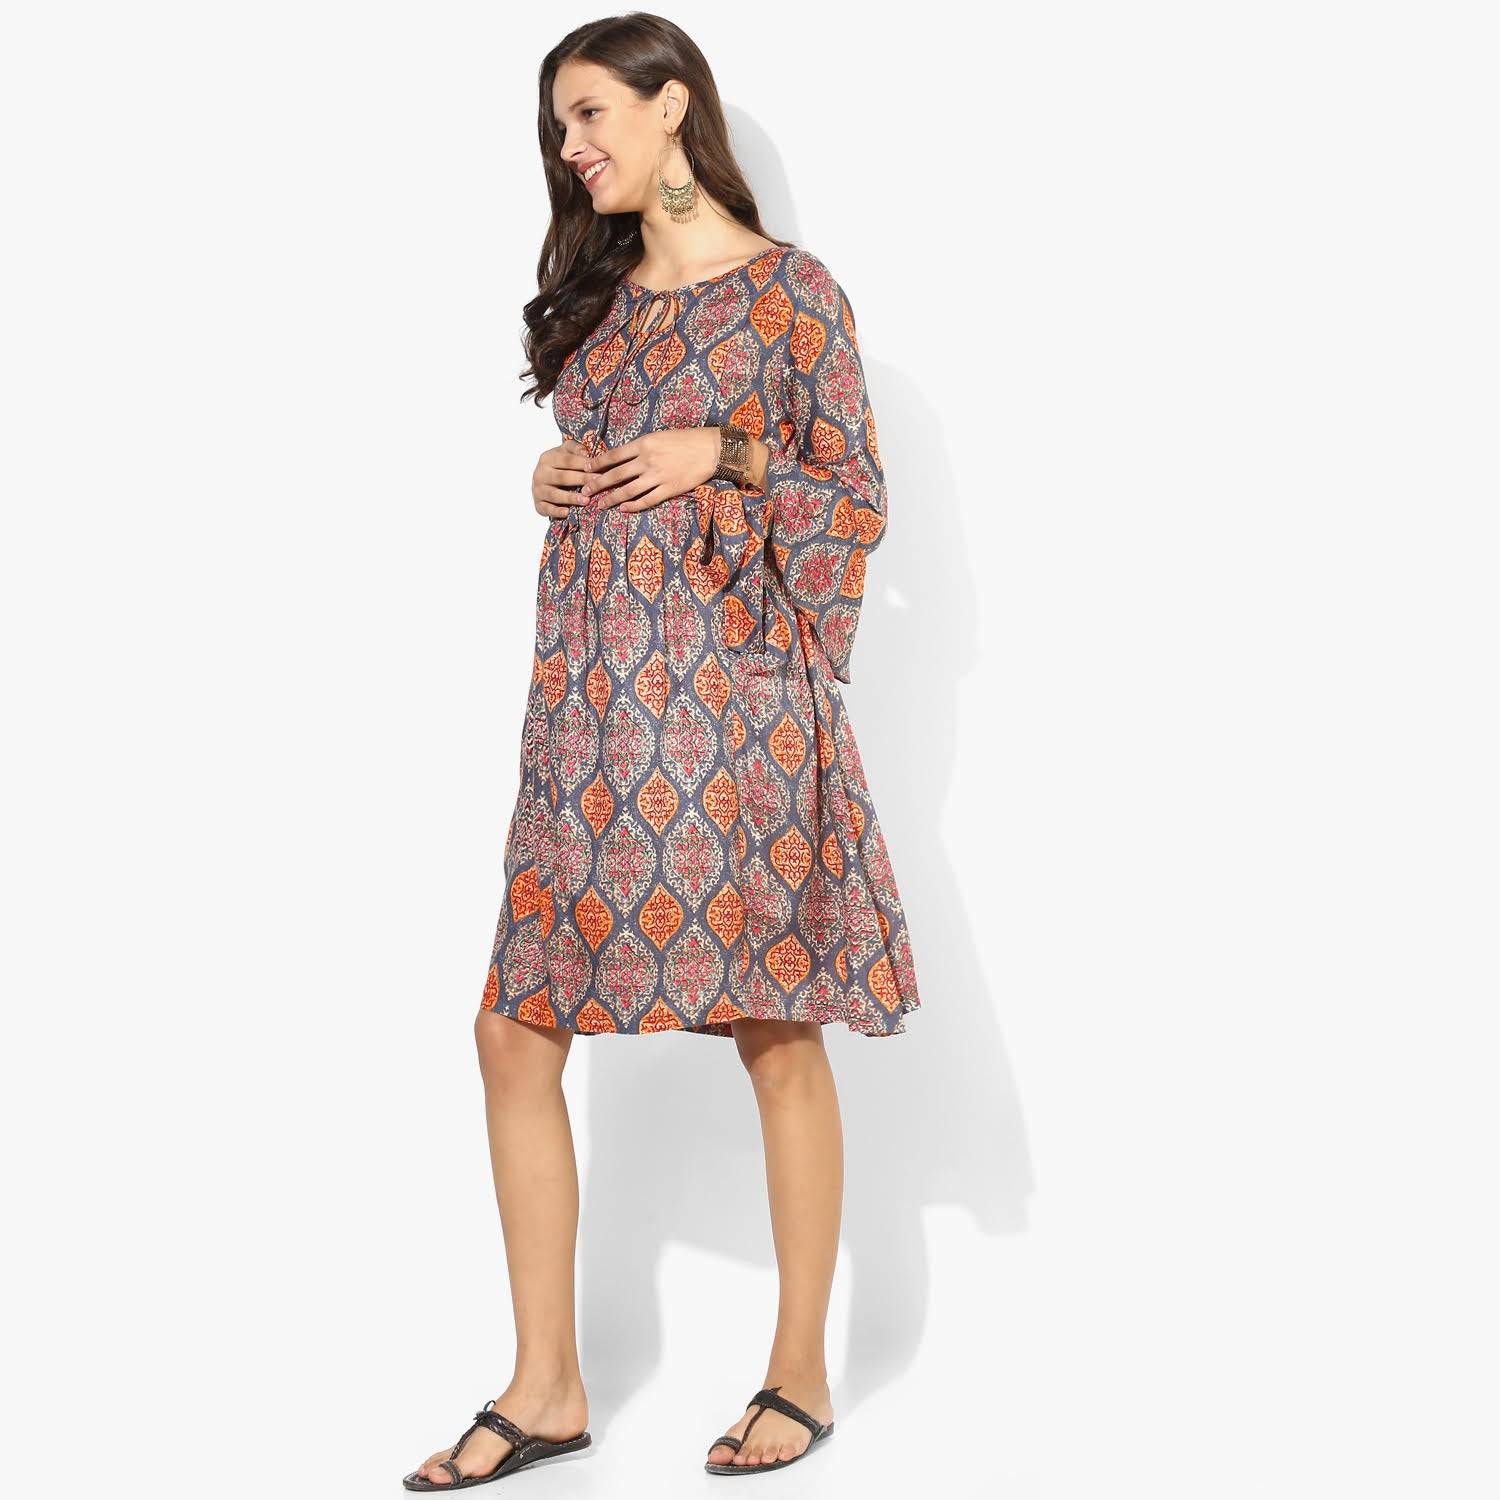 FRONT STRING TIE UP NURSING TUNIC DRESS - momsoon maternity fashion wear